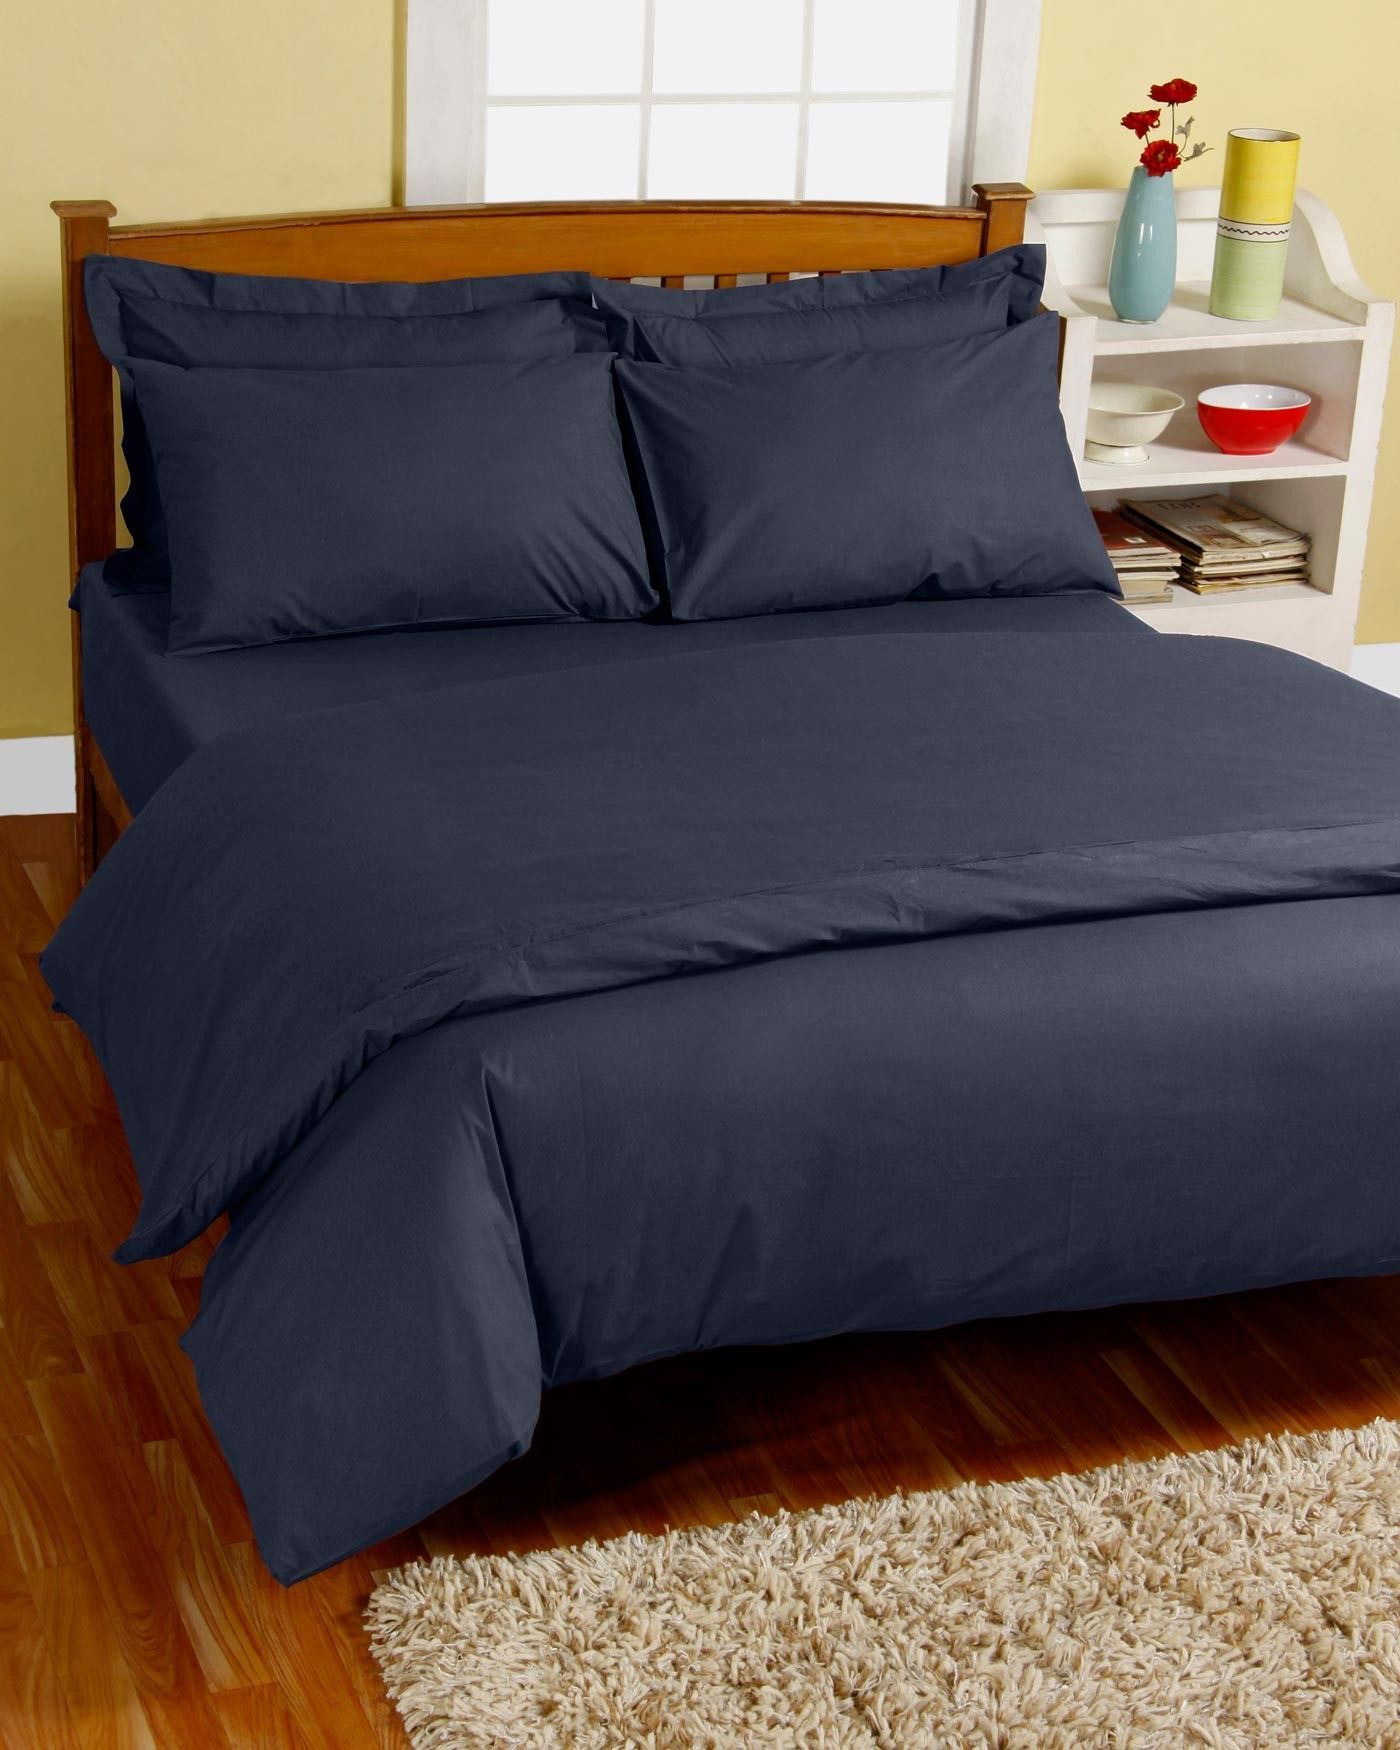 Navy Blue Egyptian Cotton Duvet Cover with Pillowcase 200